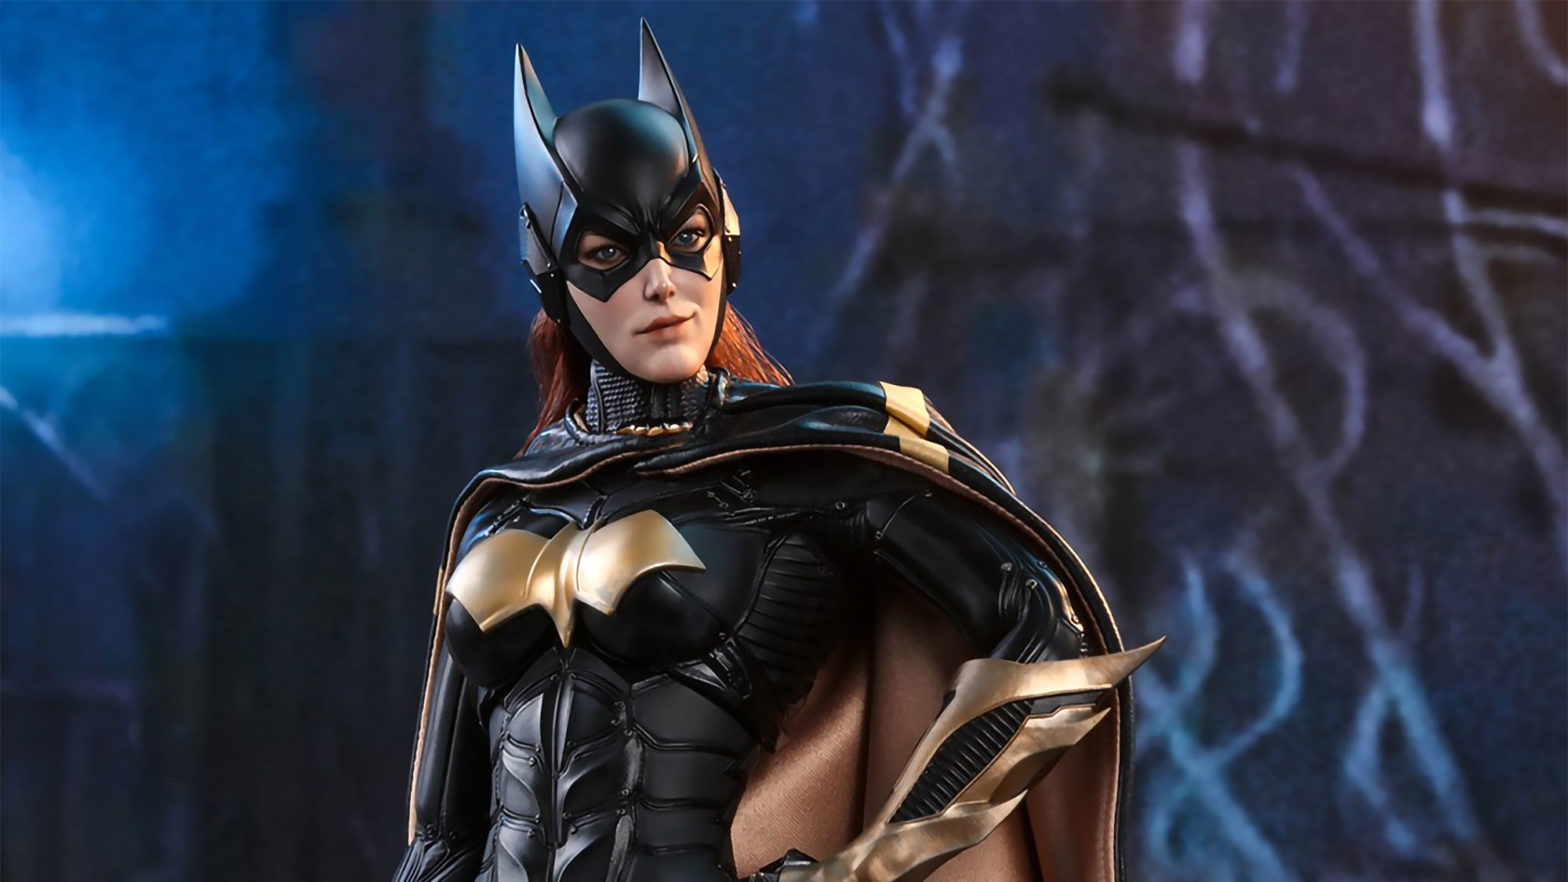 Hot Toys Arkham Knight Batman and Batgirl Figures